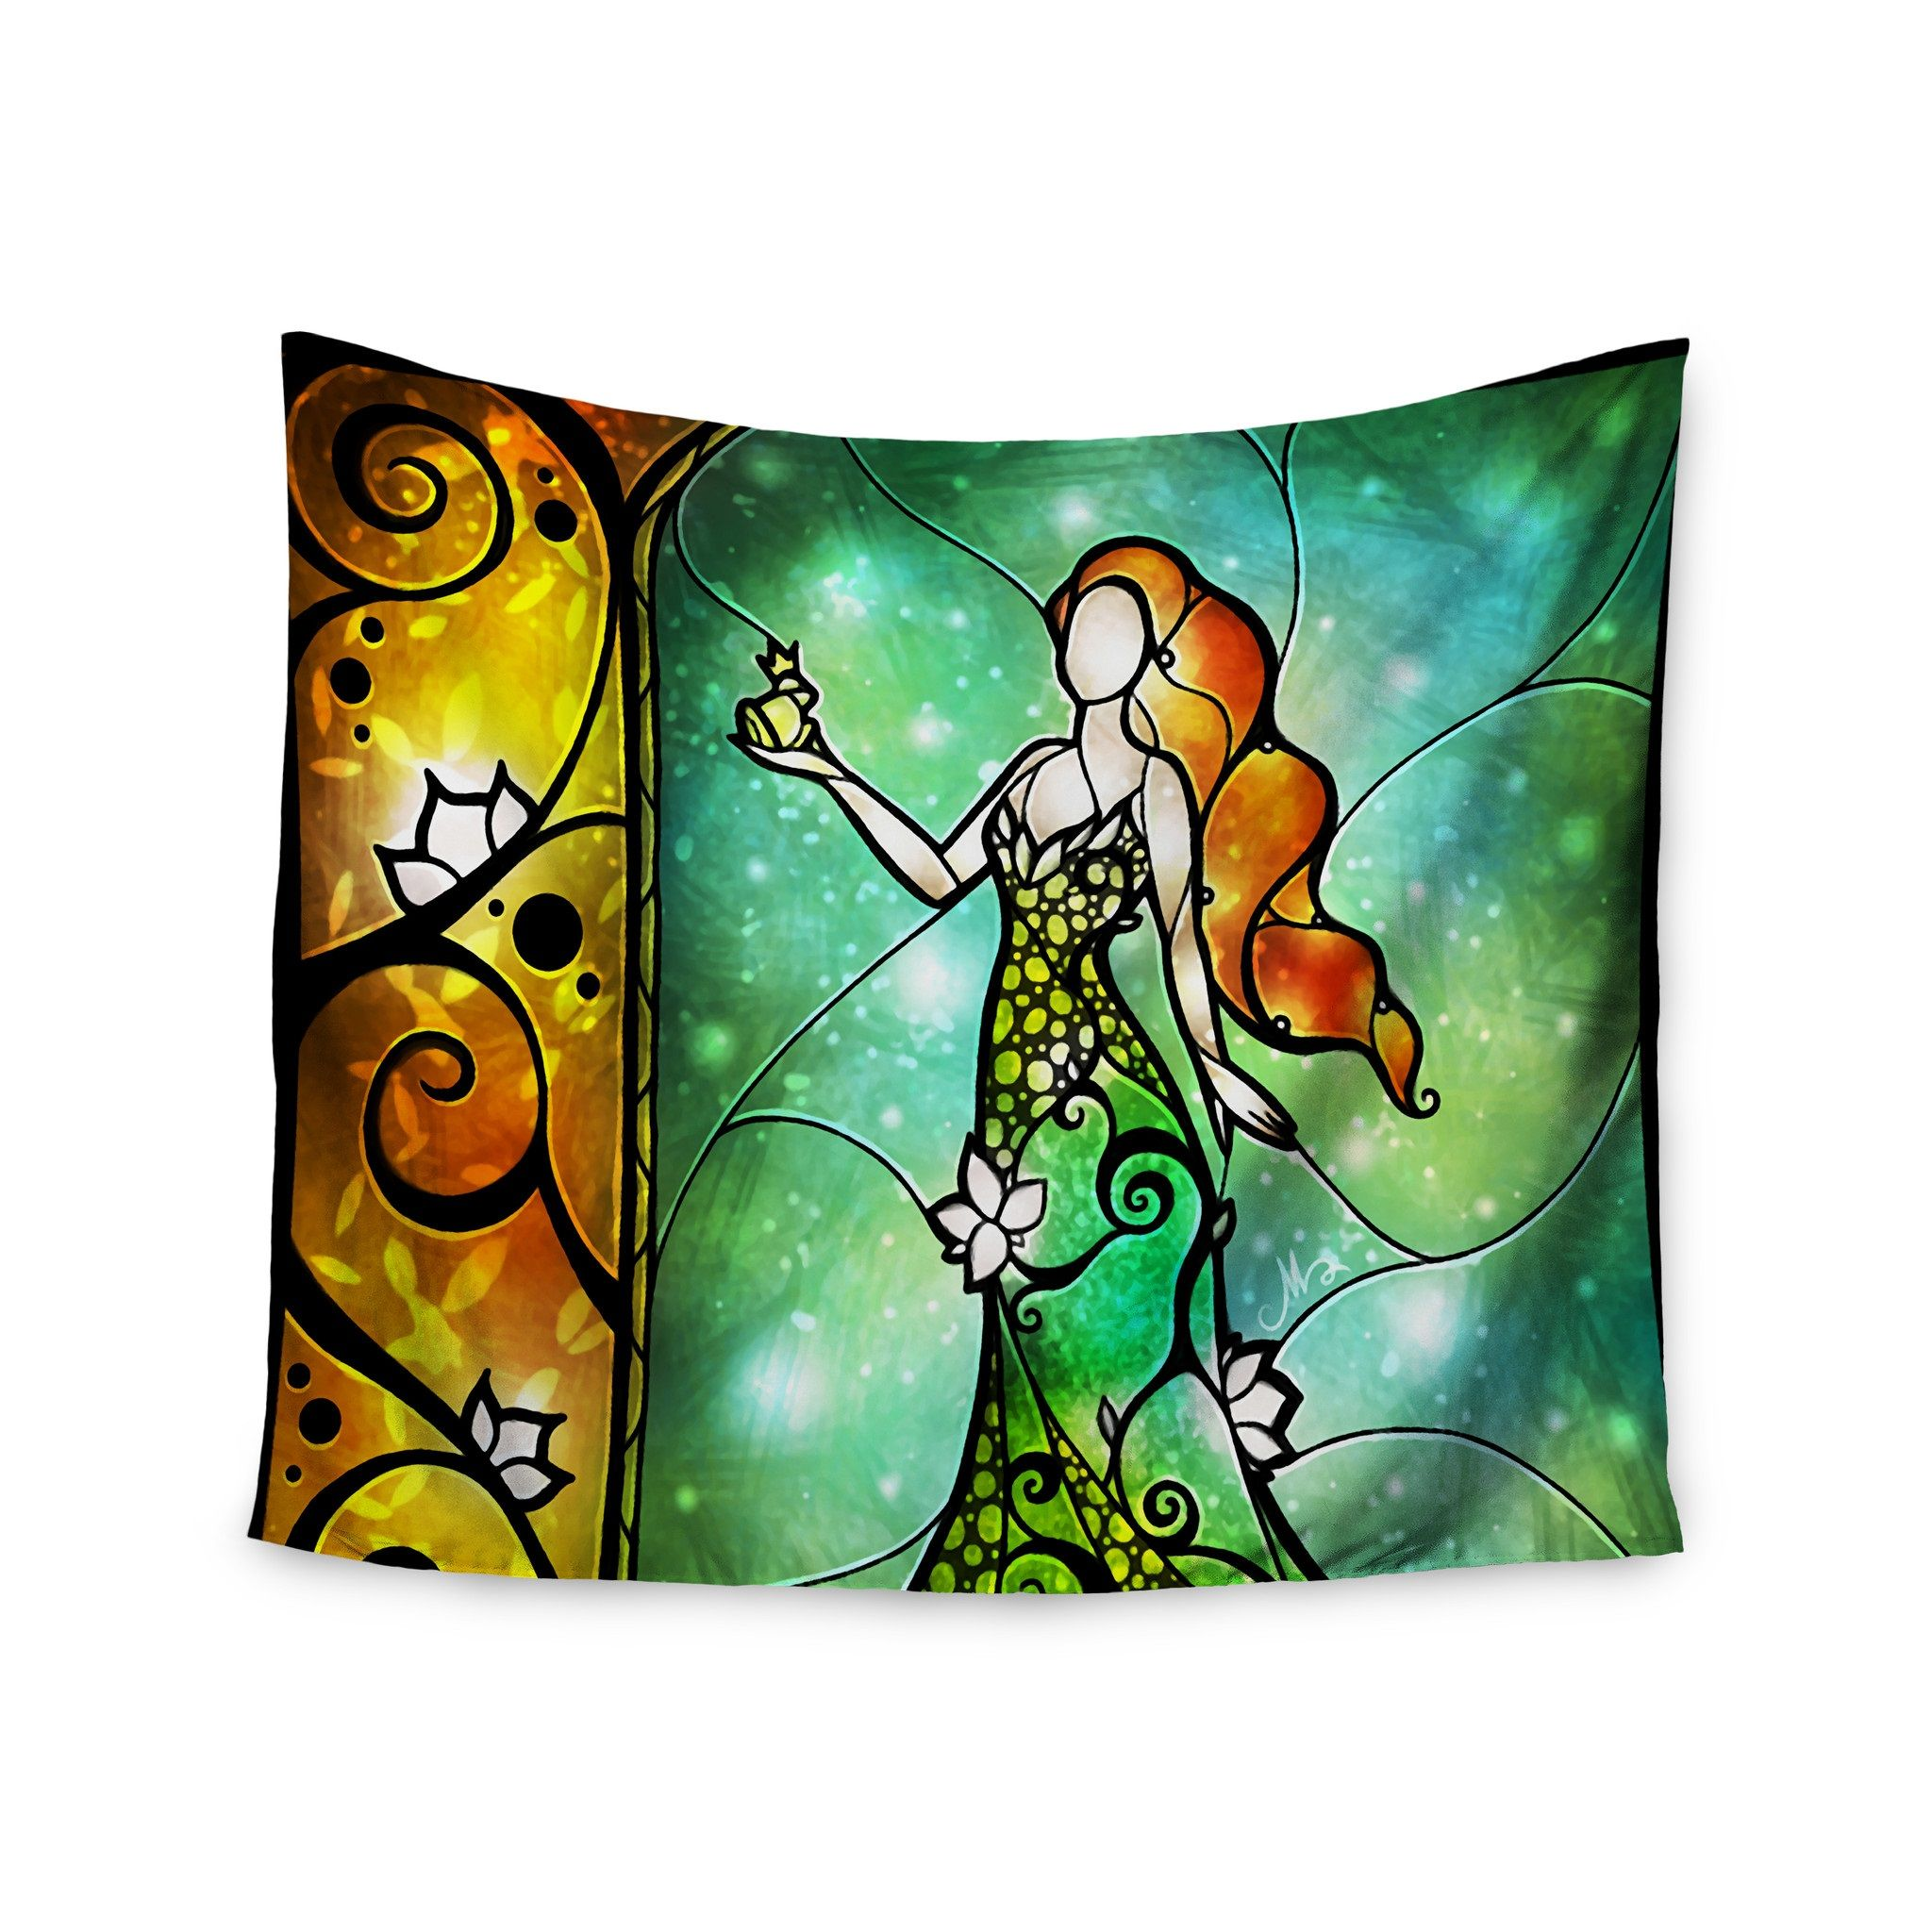 tapestry pillow covers fairy-tale characters